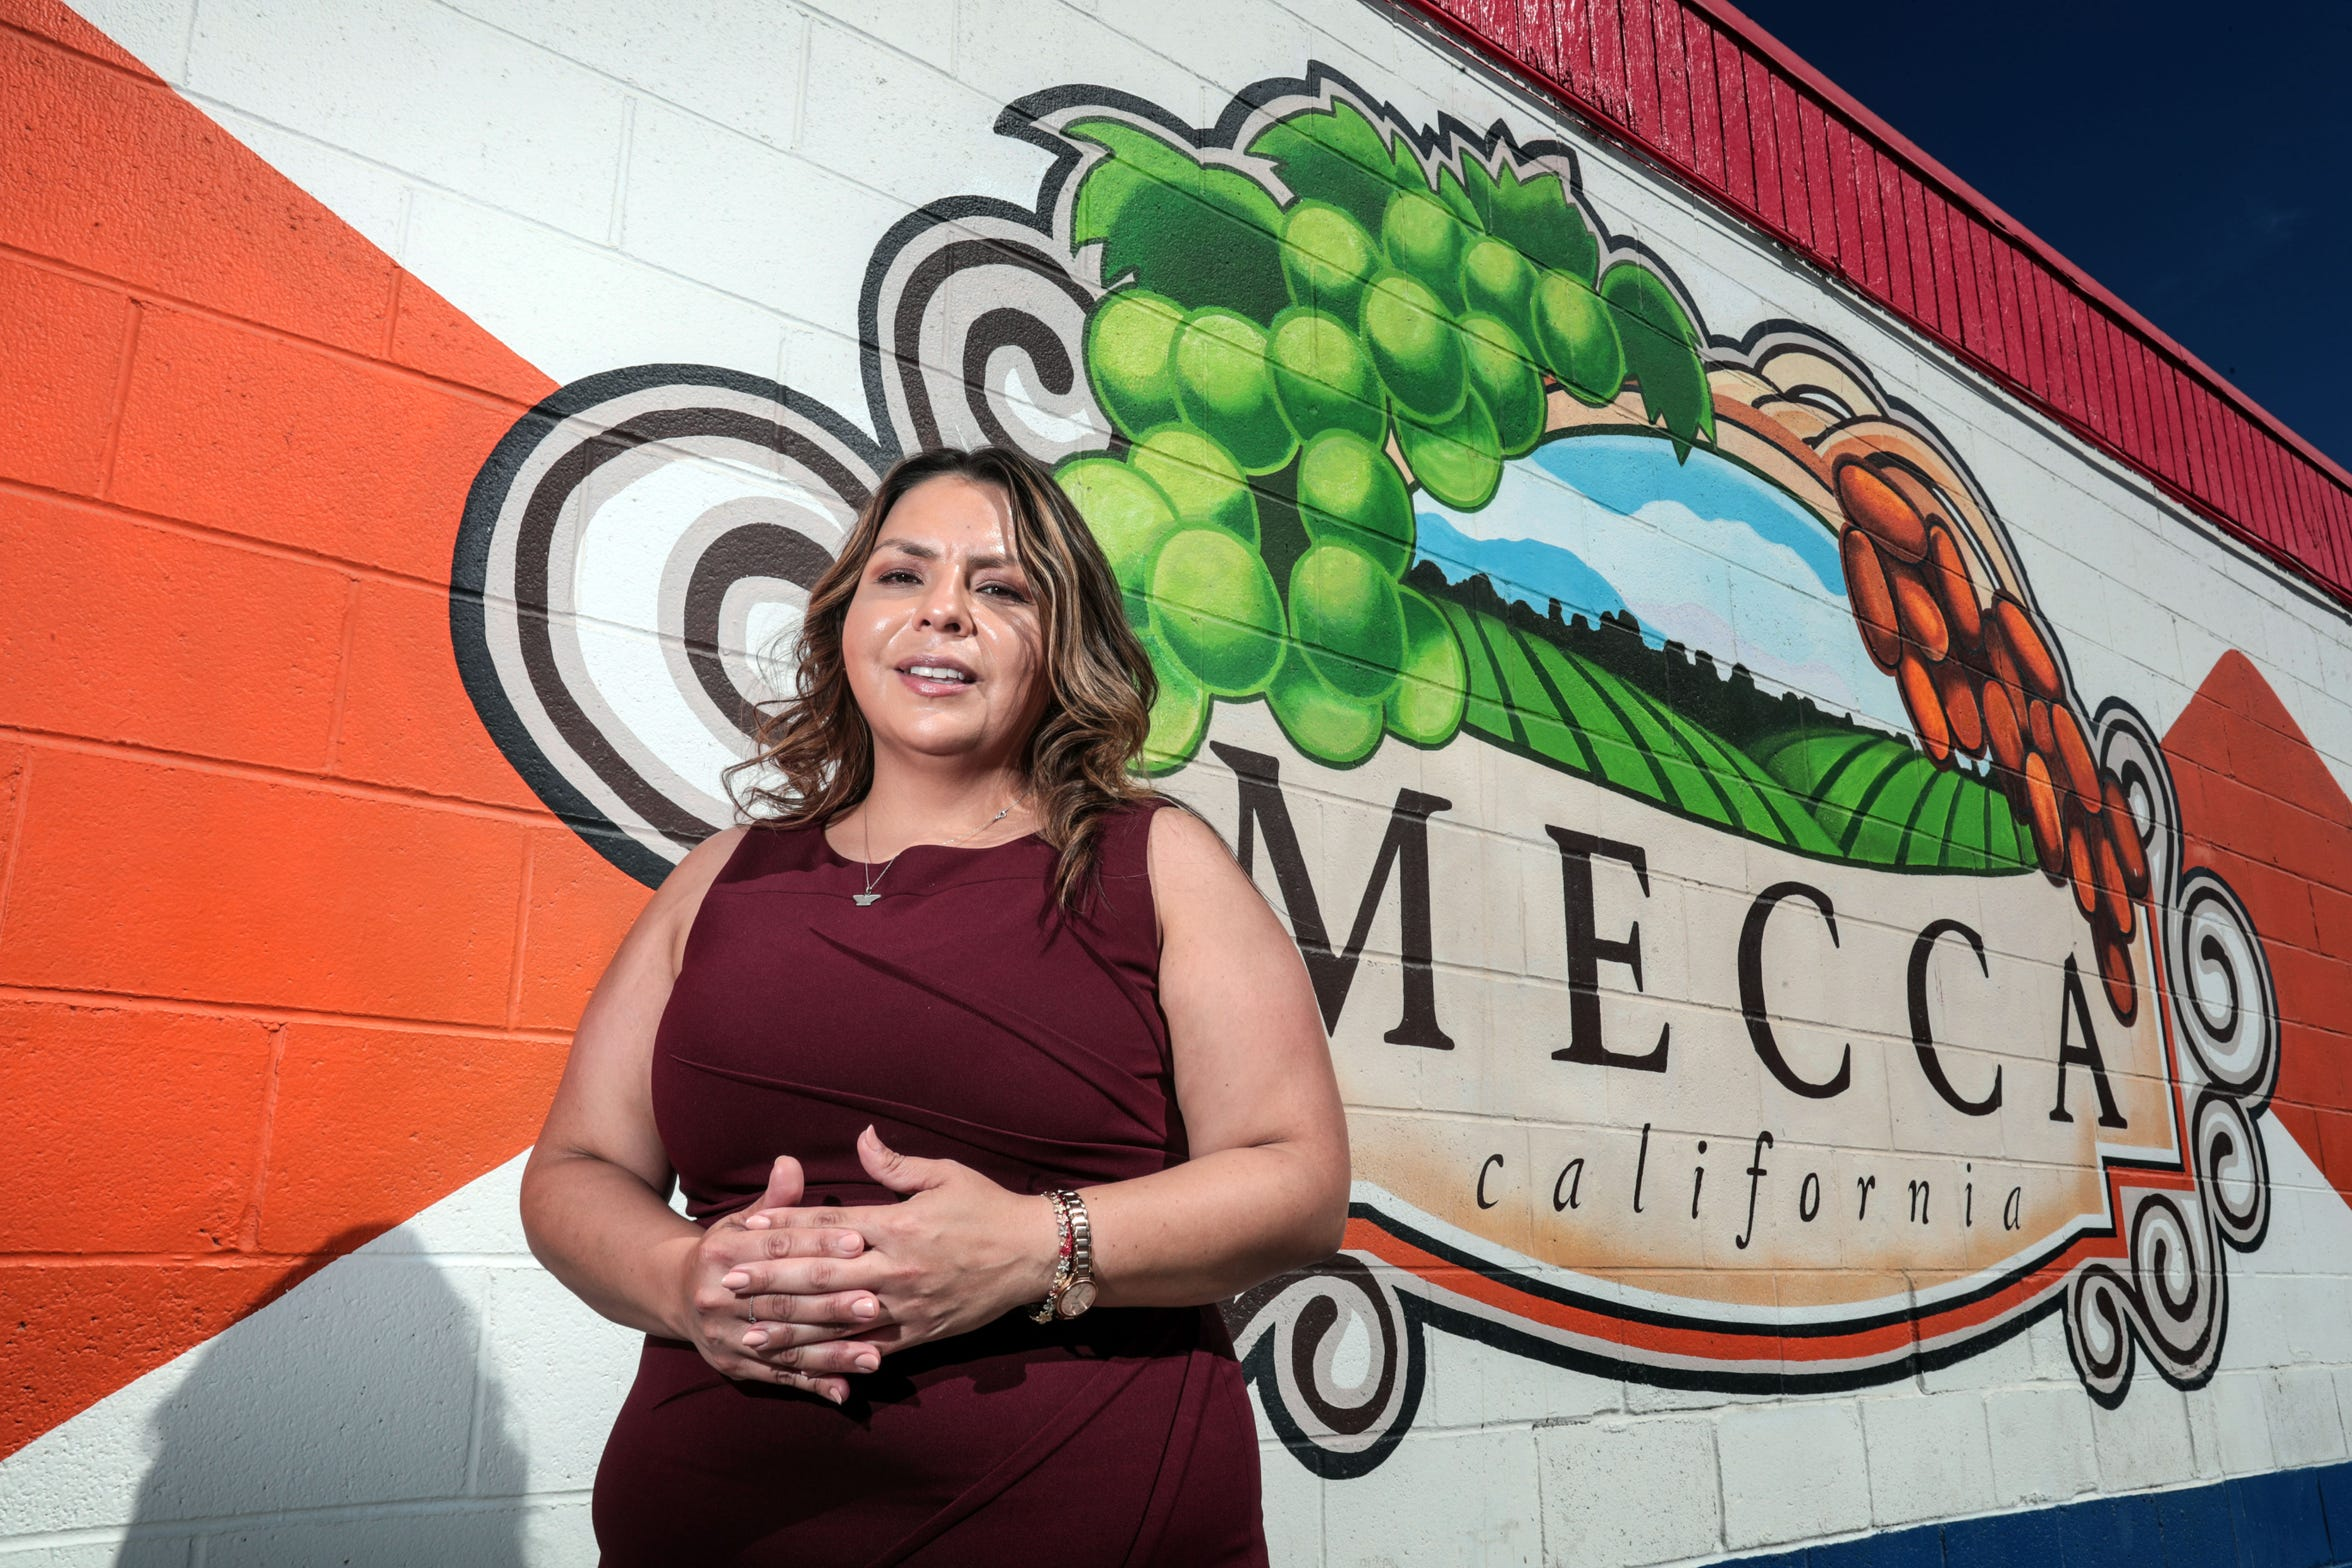 Mecca Community Council and CVUSD School Board member Maria Machuca on Thursday, August 30, 2018 in Mecca.